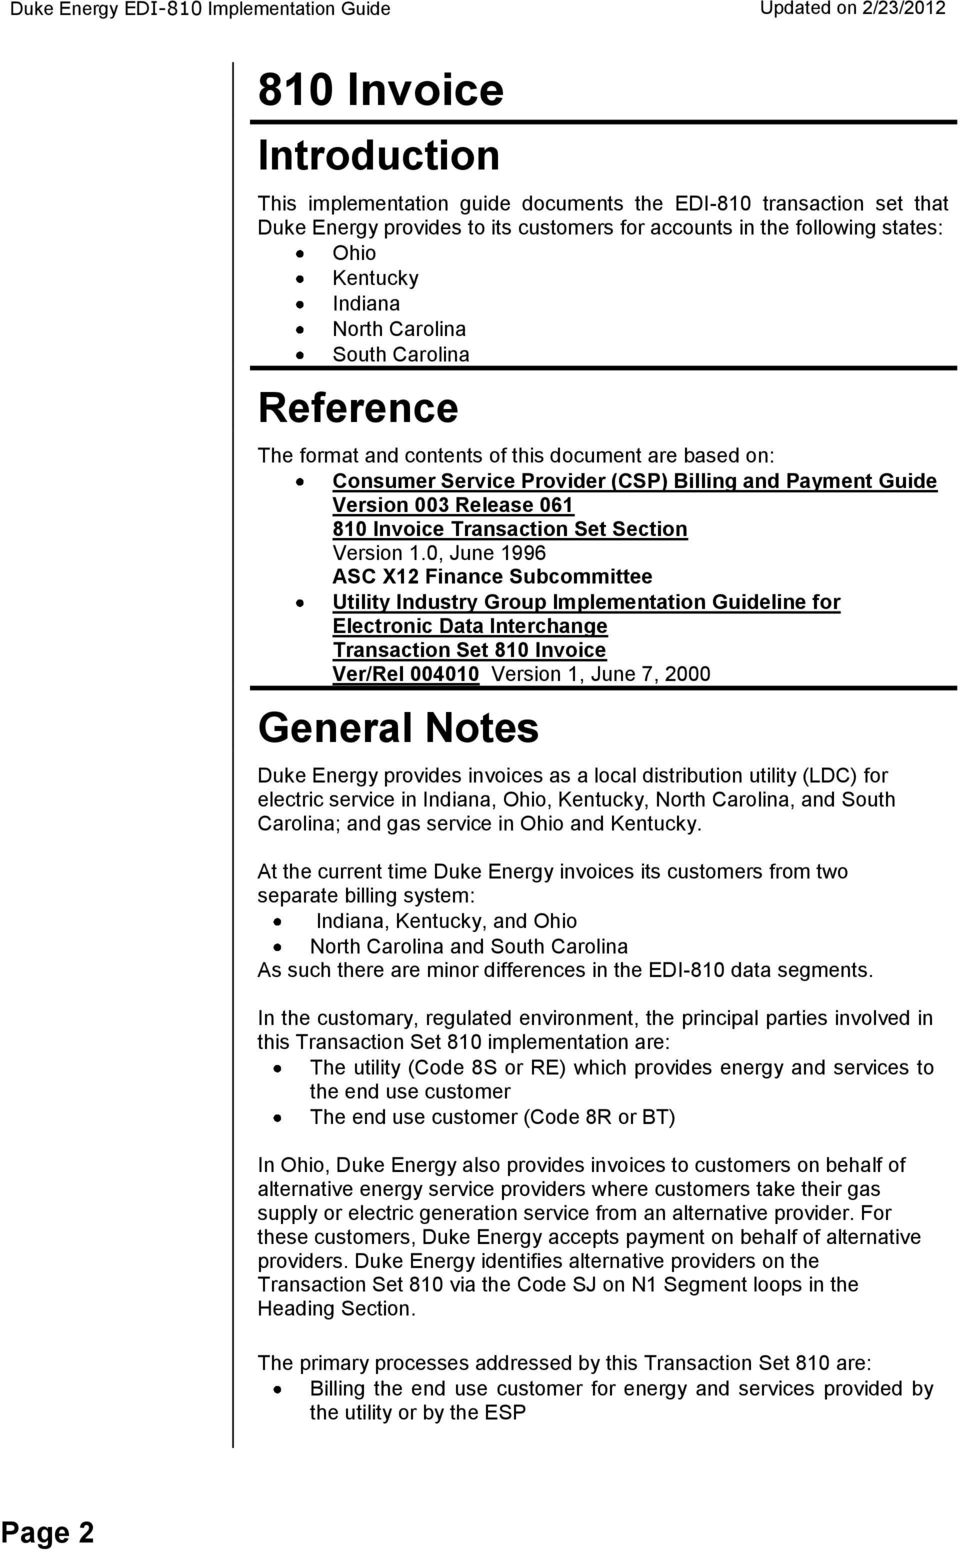 810 Invoice  Introduction  Reference  General Notes  Page 2